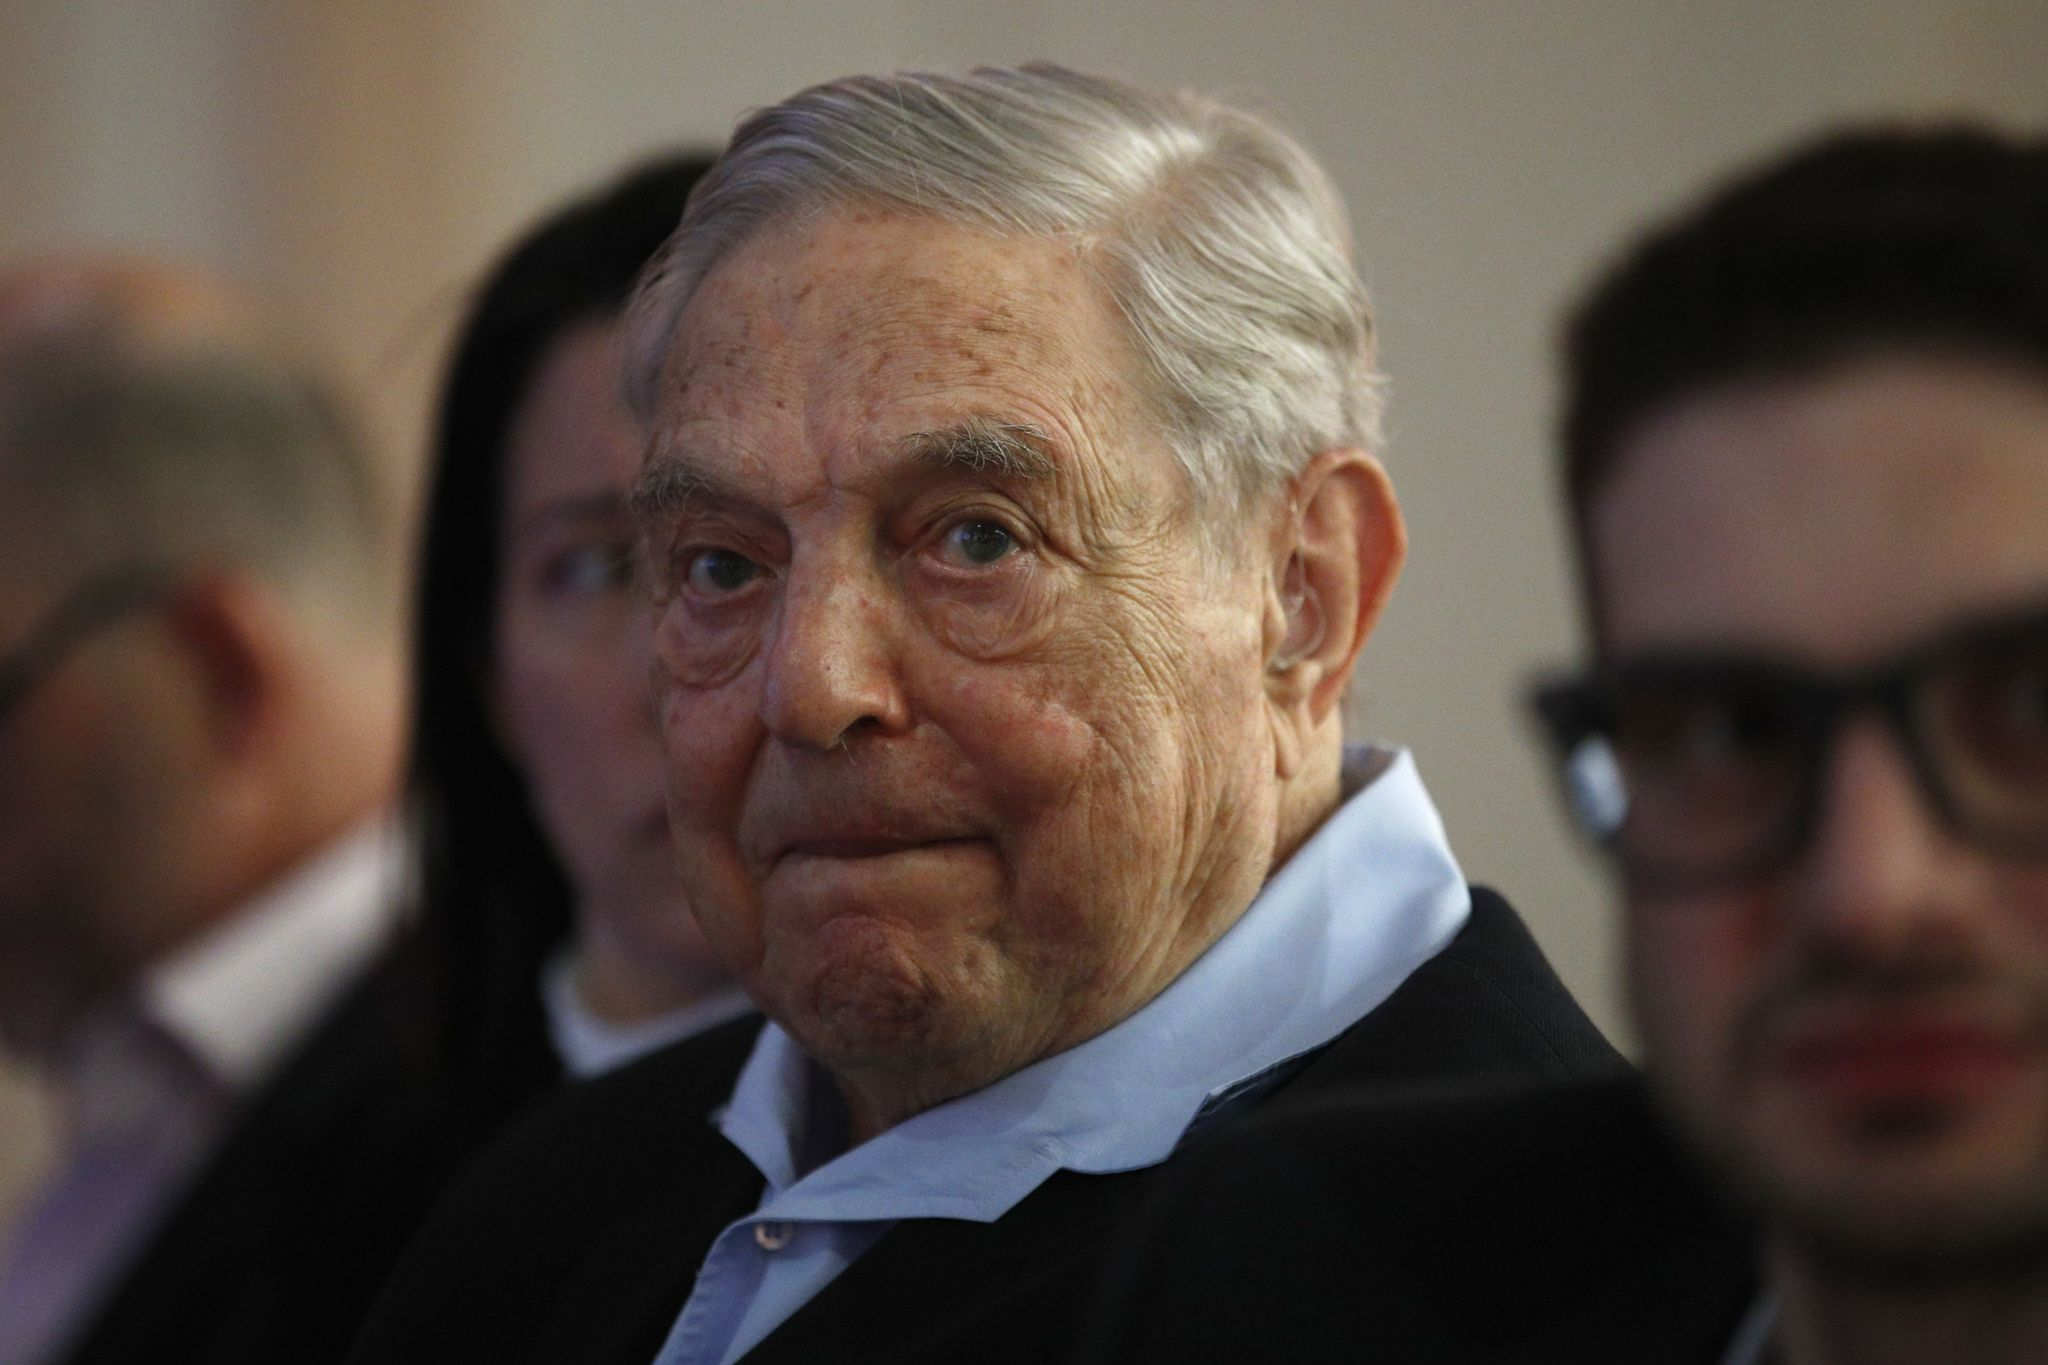 George Soros and his 'rented evangelicals' outed by Christian leaders - Washington Times